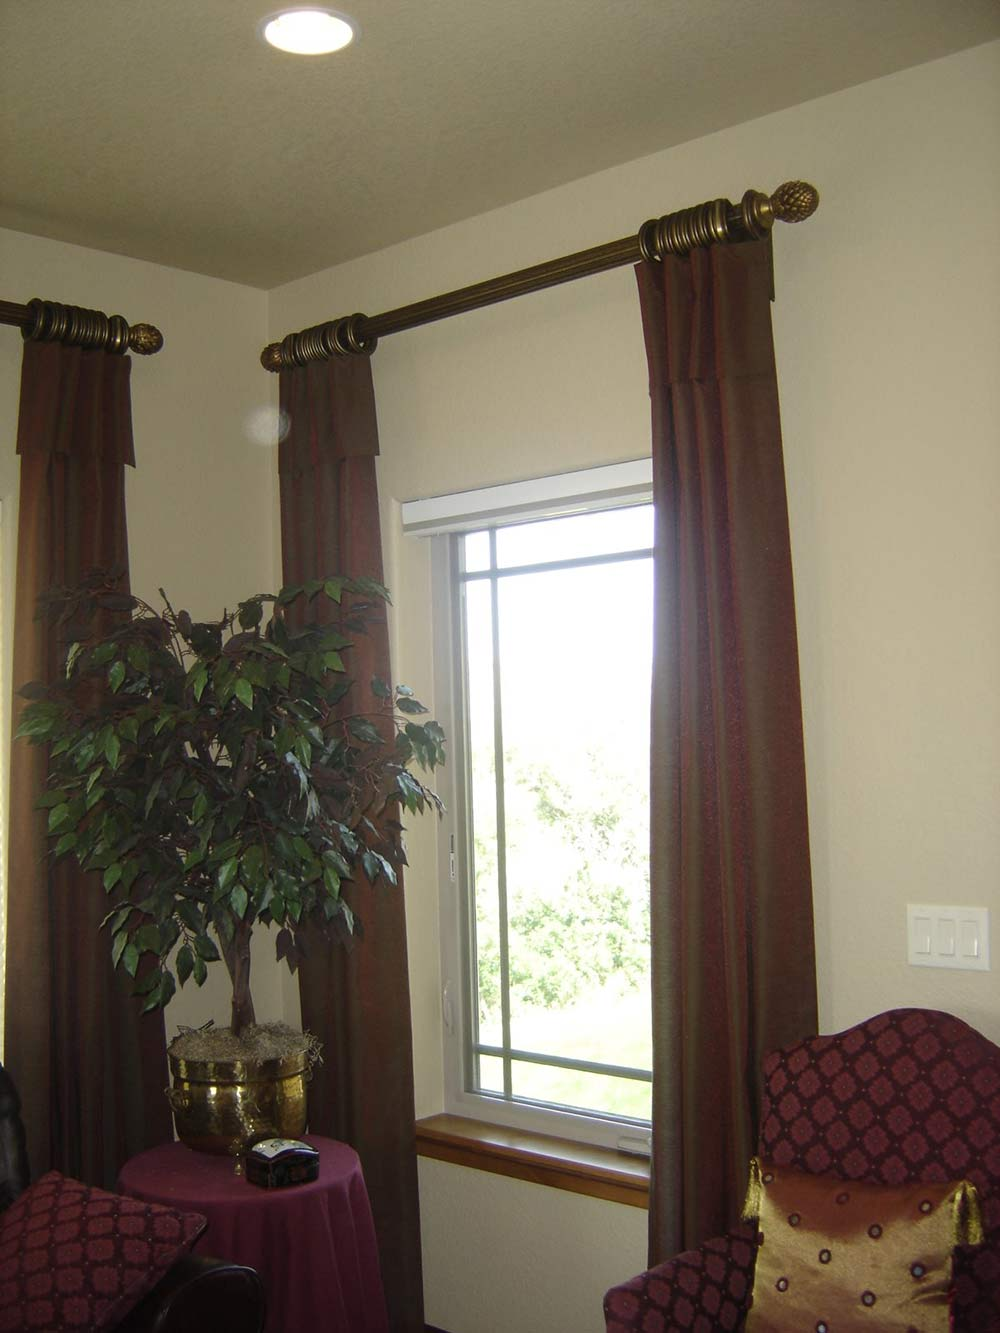 floor-to-ceiling traditional curtains